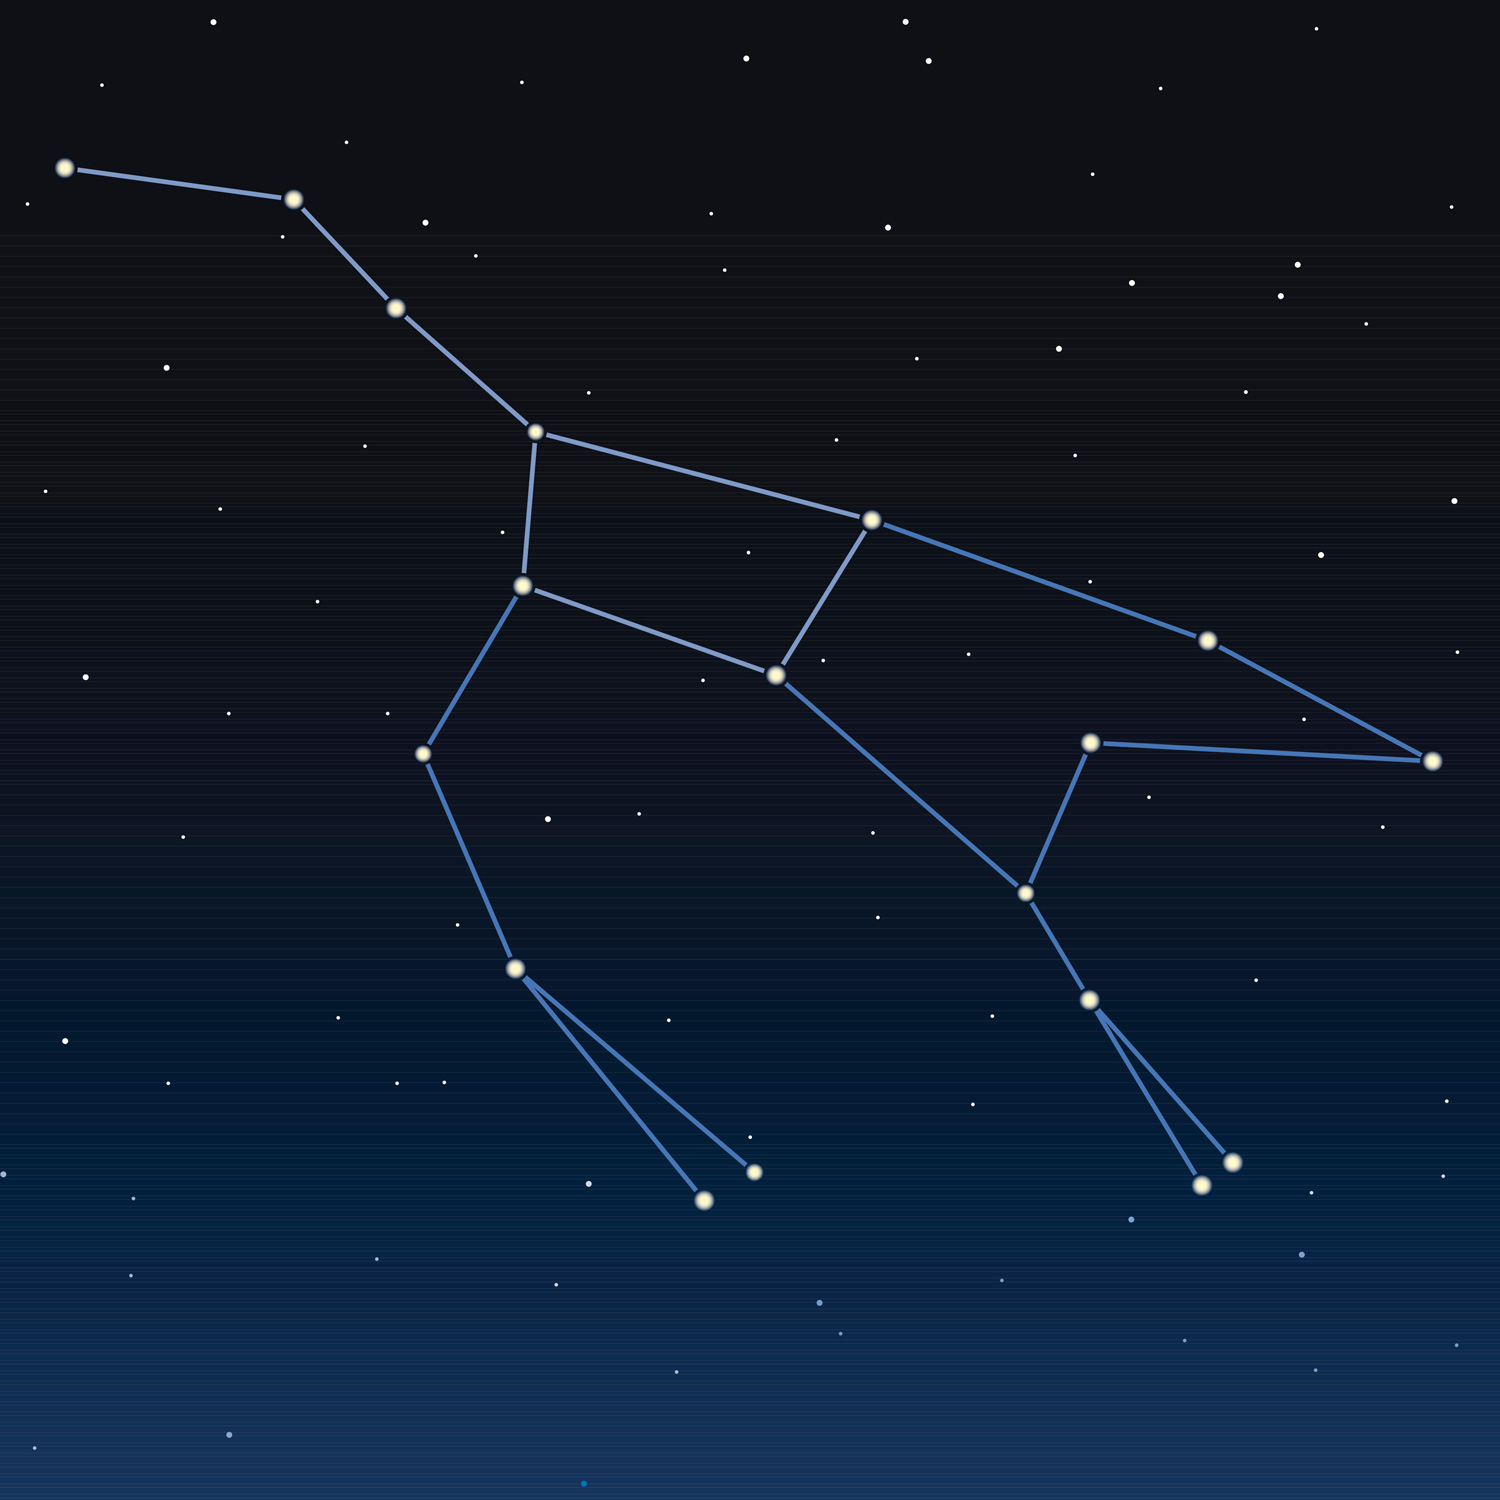 Illustration of single constellation